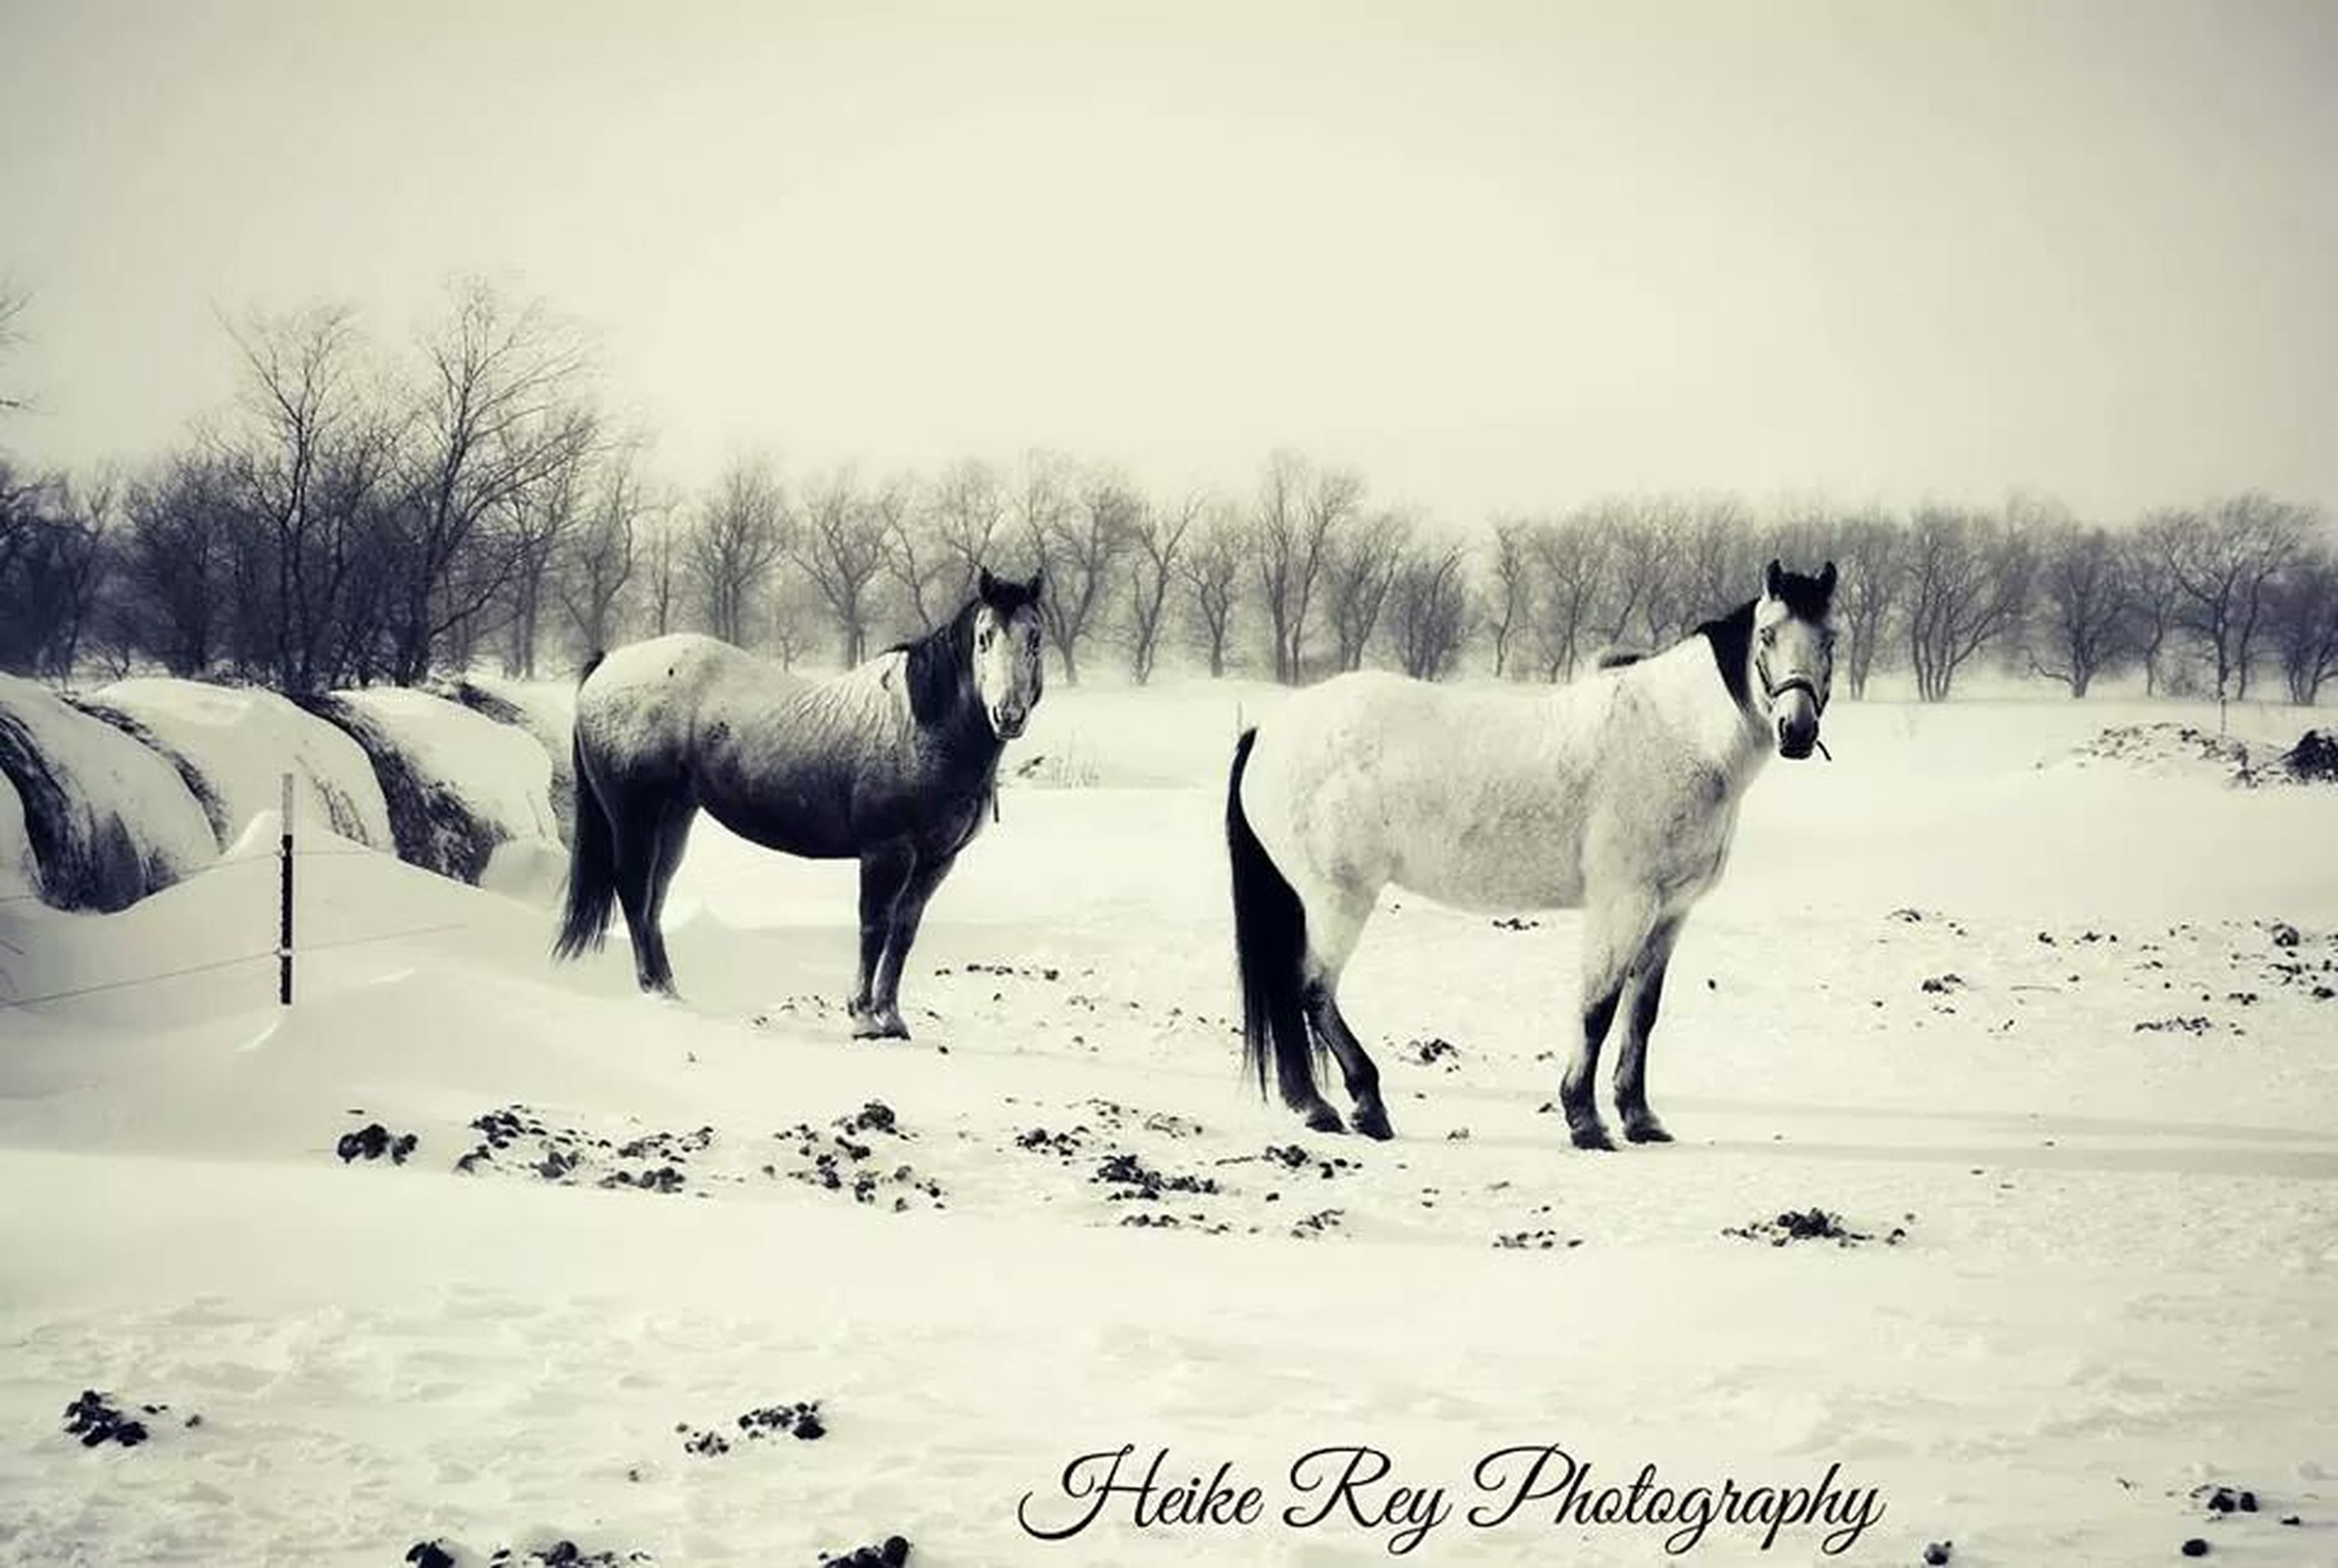 domestic animals, animal themes, snow, winter, cold temperature, horse, mammal, livestock, field, season, landscape, weather, white color, herbivorous, standing, working animal, nature, tree, covering, tranquility